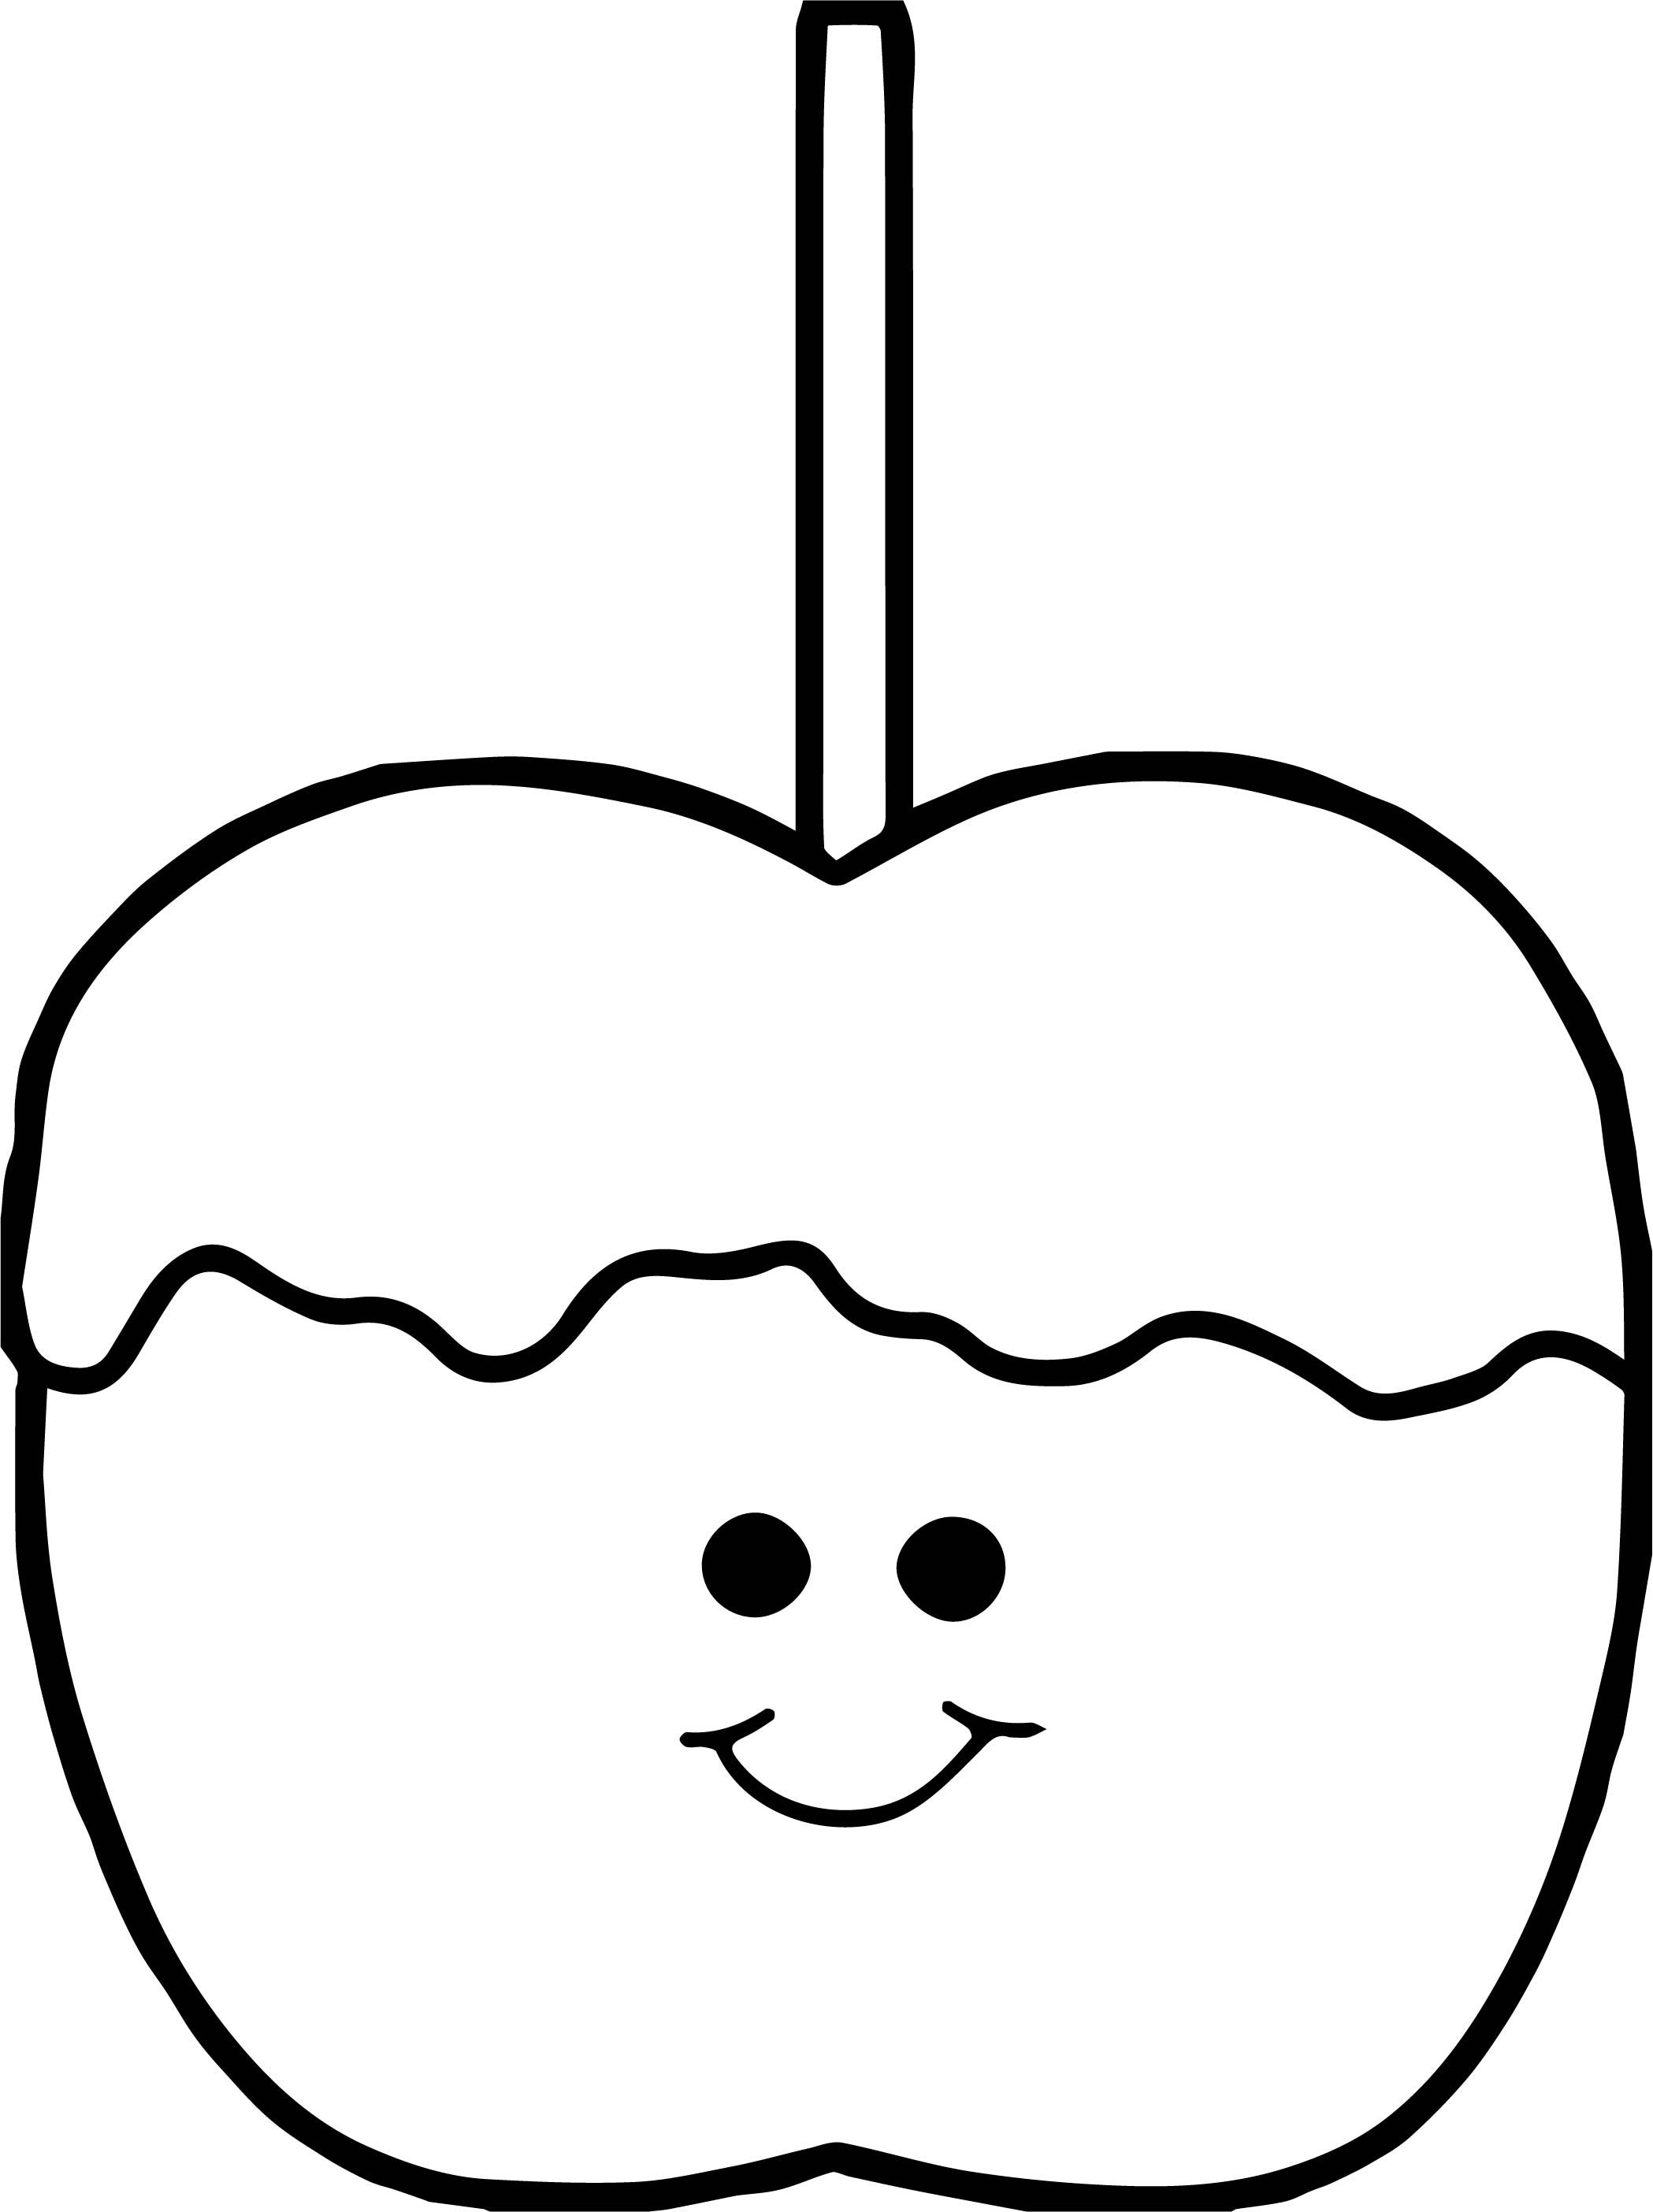 Awesome Cute Caramel Apple Coloring Page